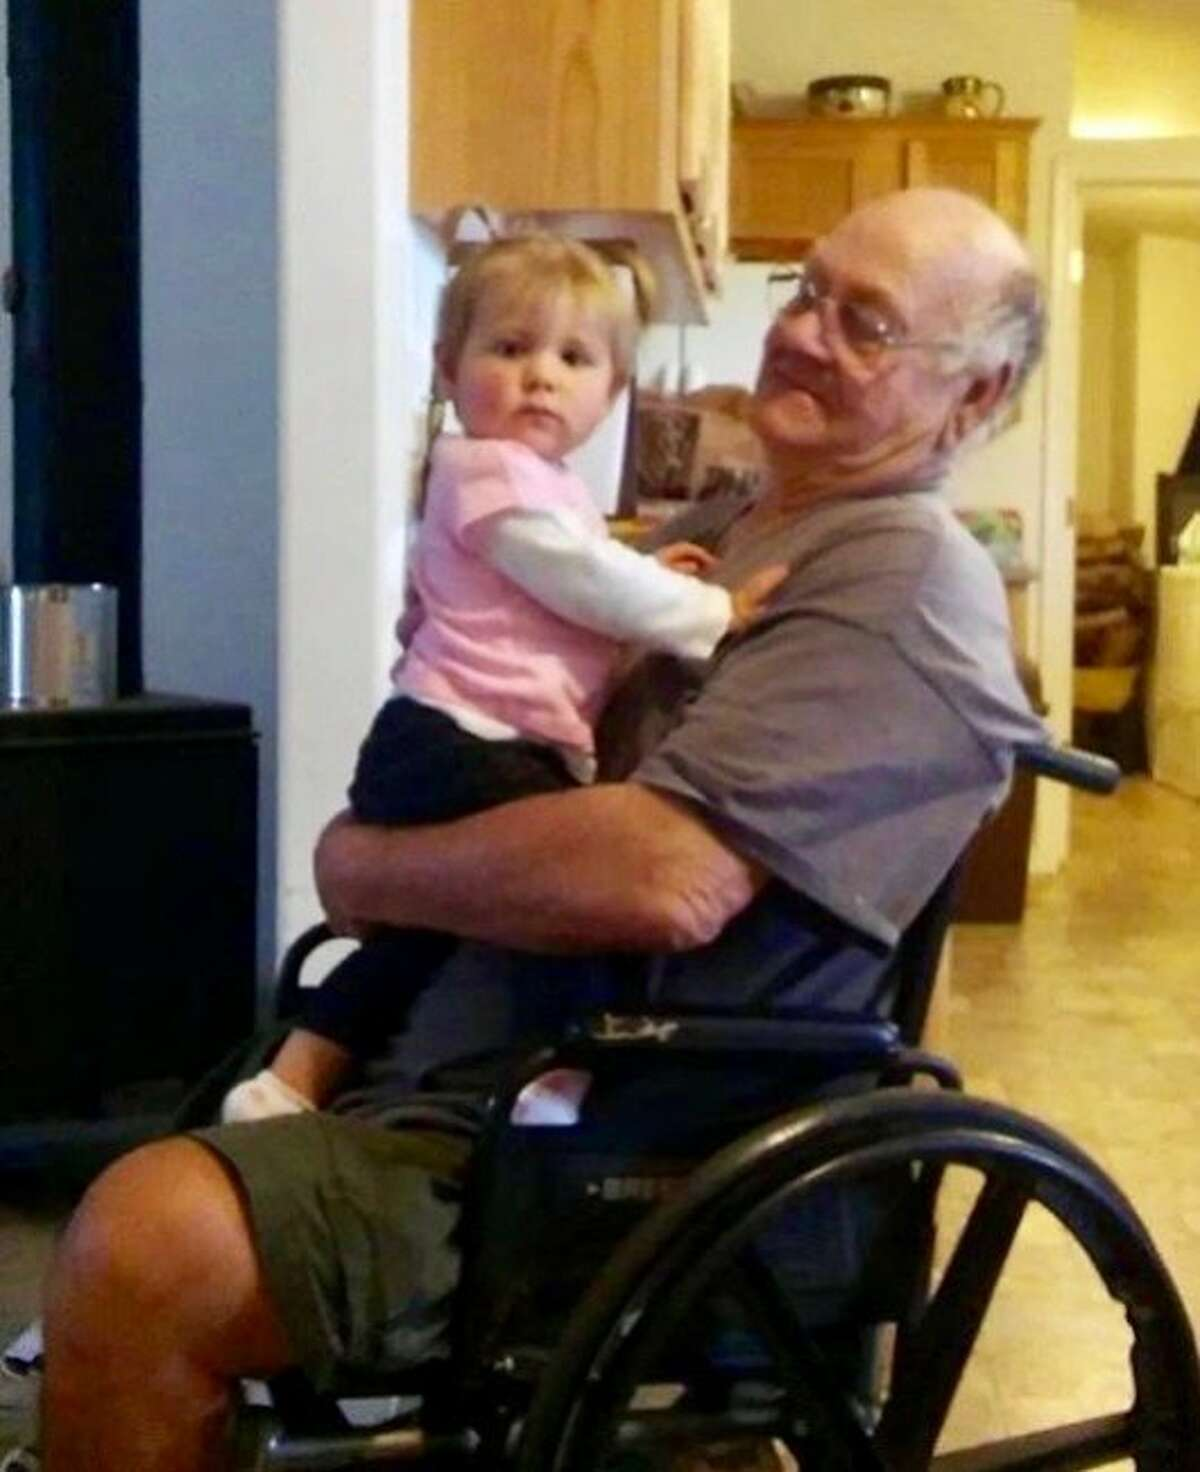 TK Huff, 71, with his great-granddaughter Layla.